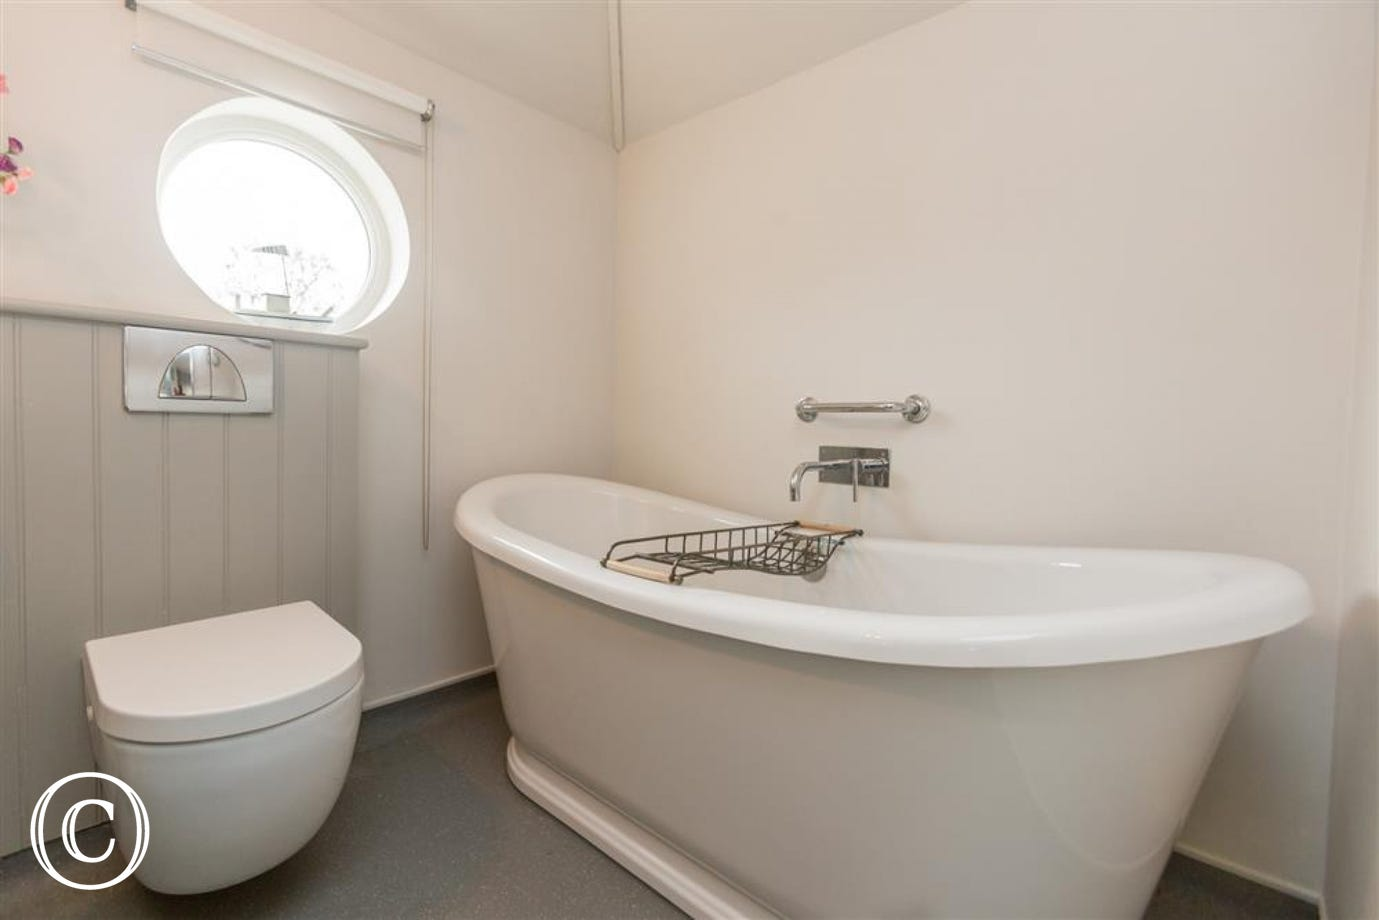 The bath in the bathroom accessed from the twin bedroom